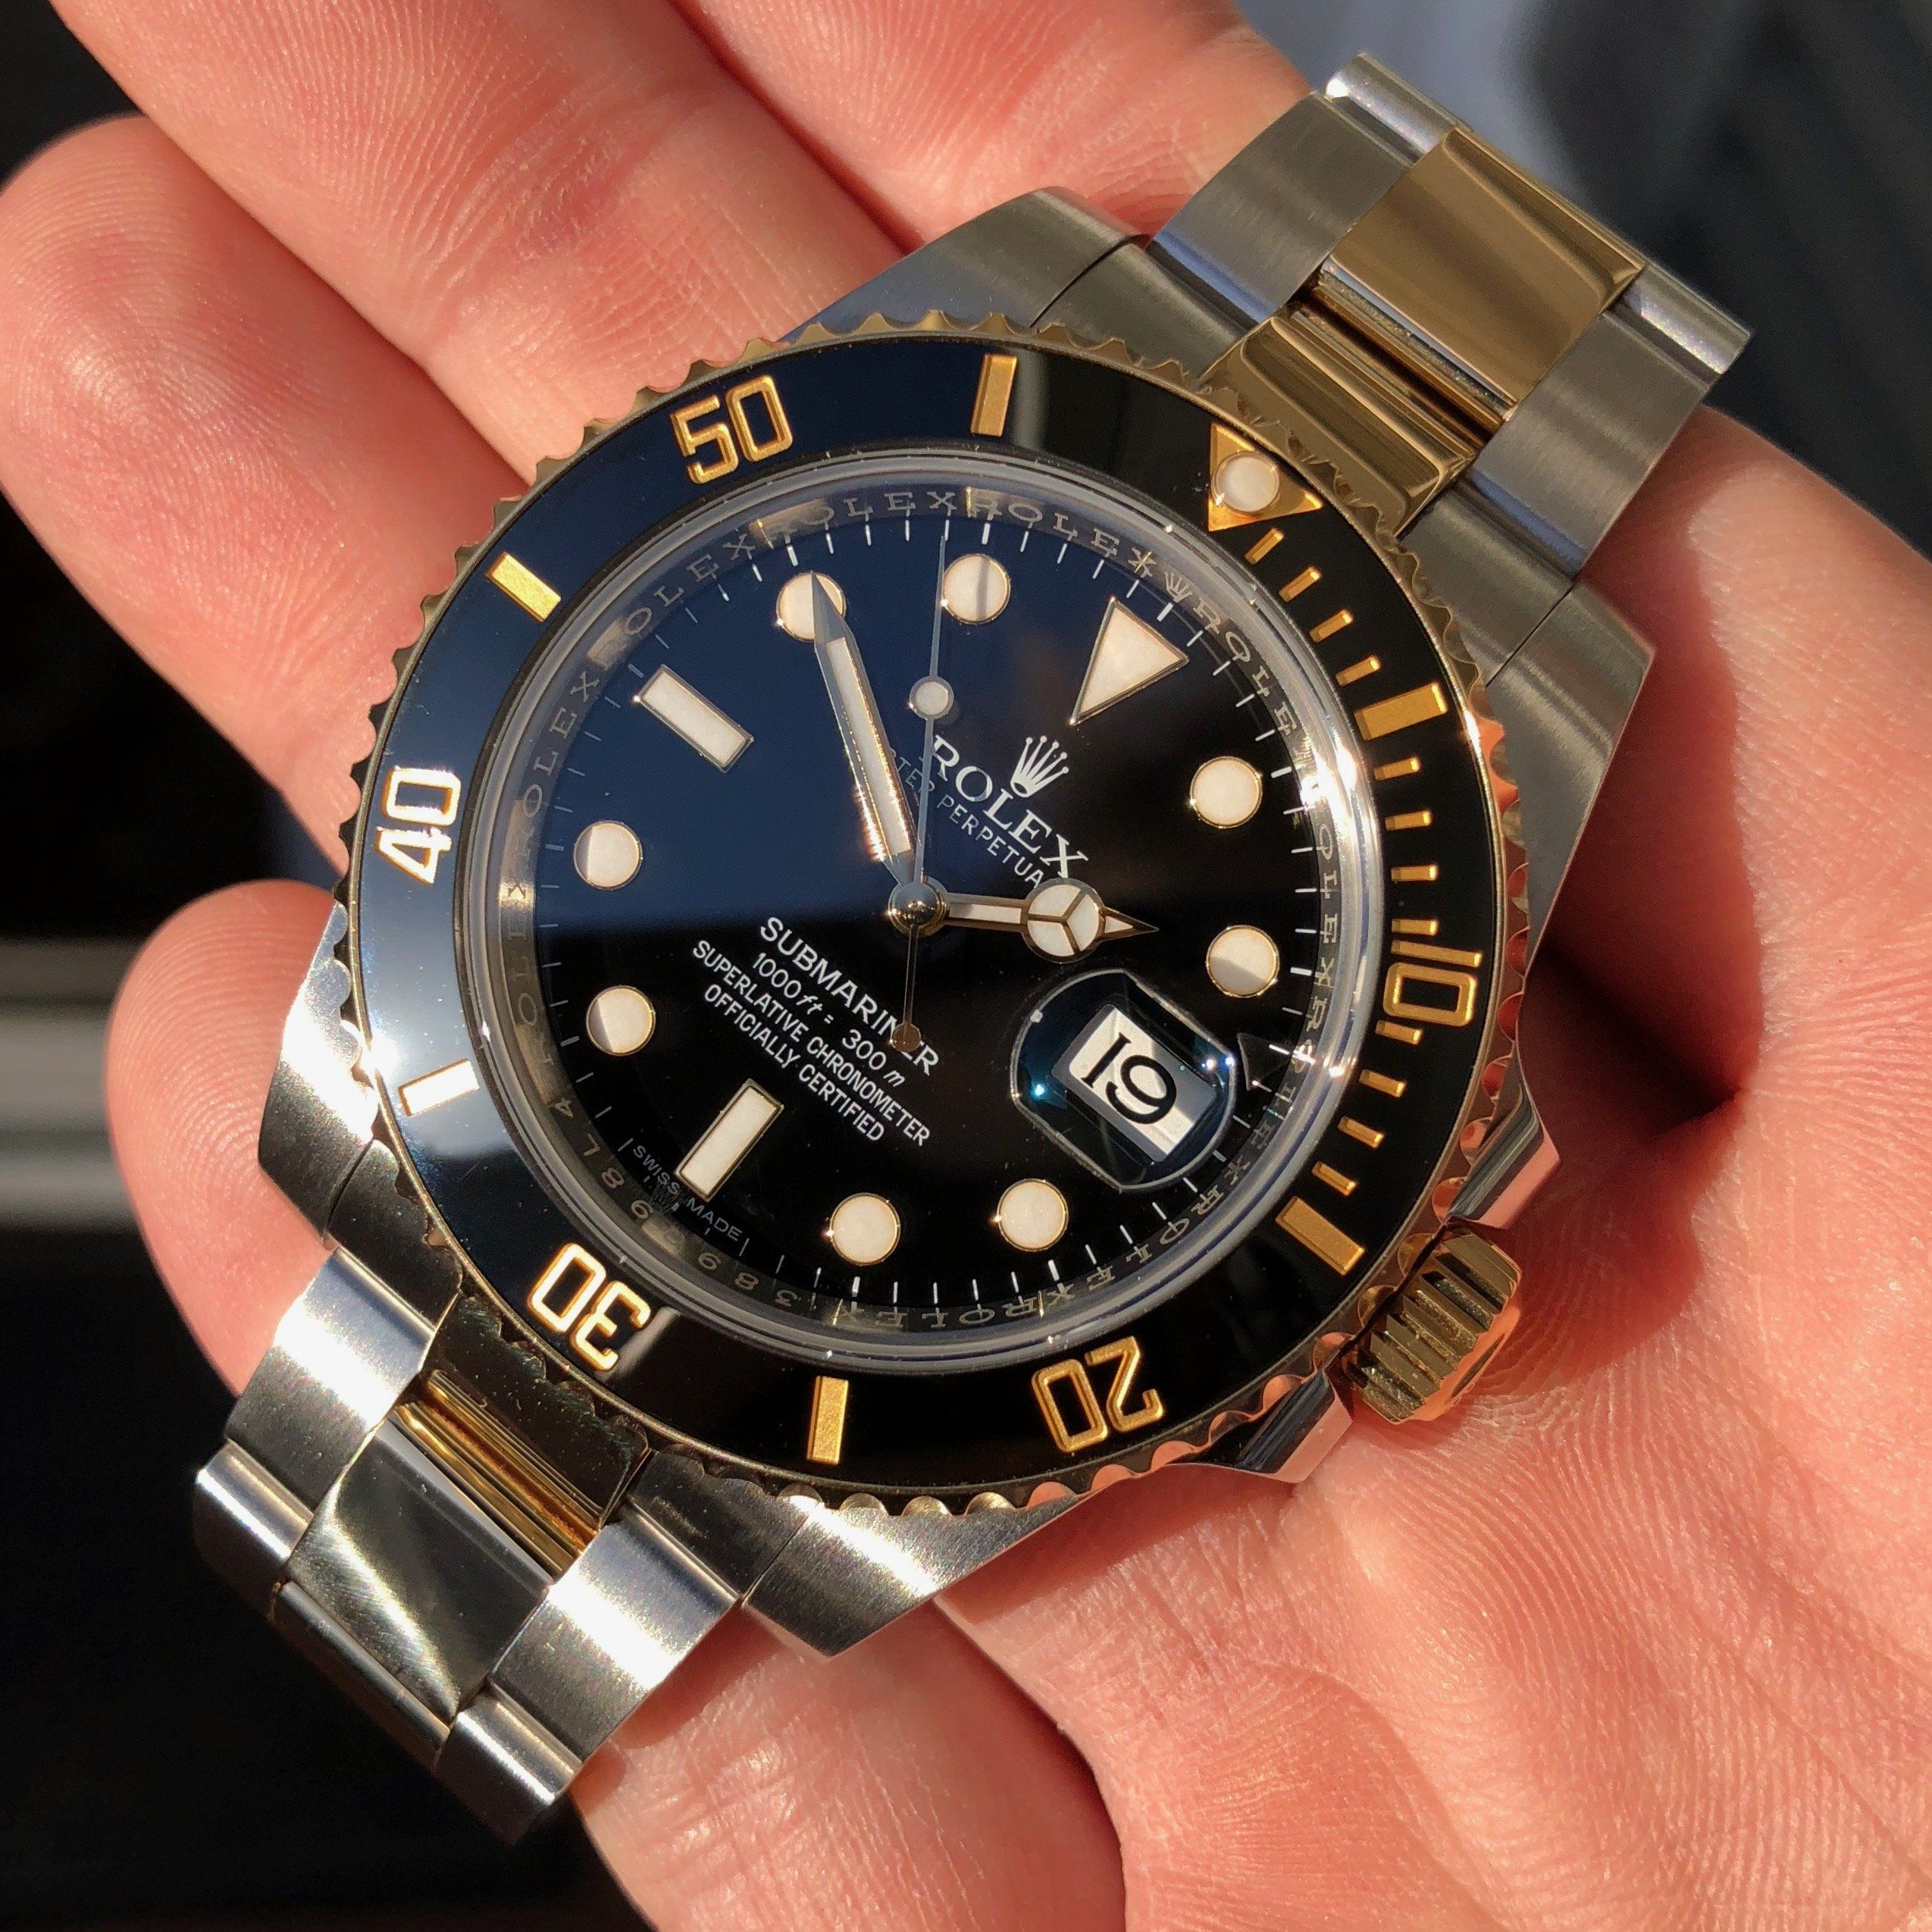 116613ln Rolex Submariner Black Dial With Black Ceramic Bezel Mens Automatic Watch Rolex Watches For Men Rolex Submariner Automatic Watches For Men